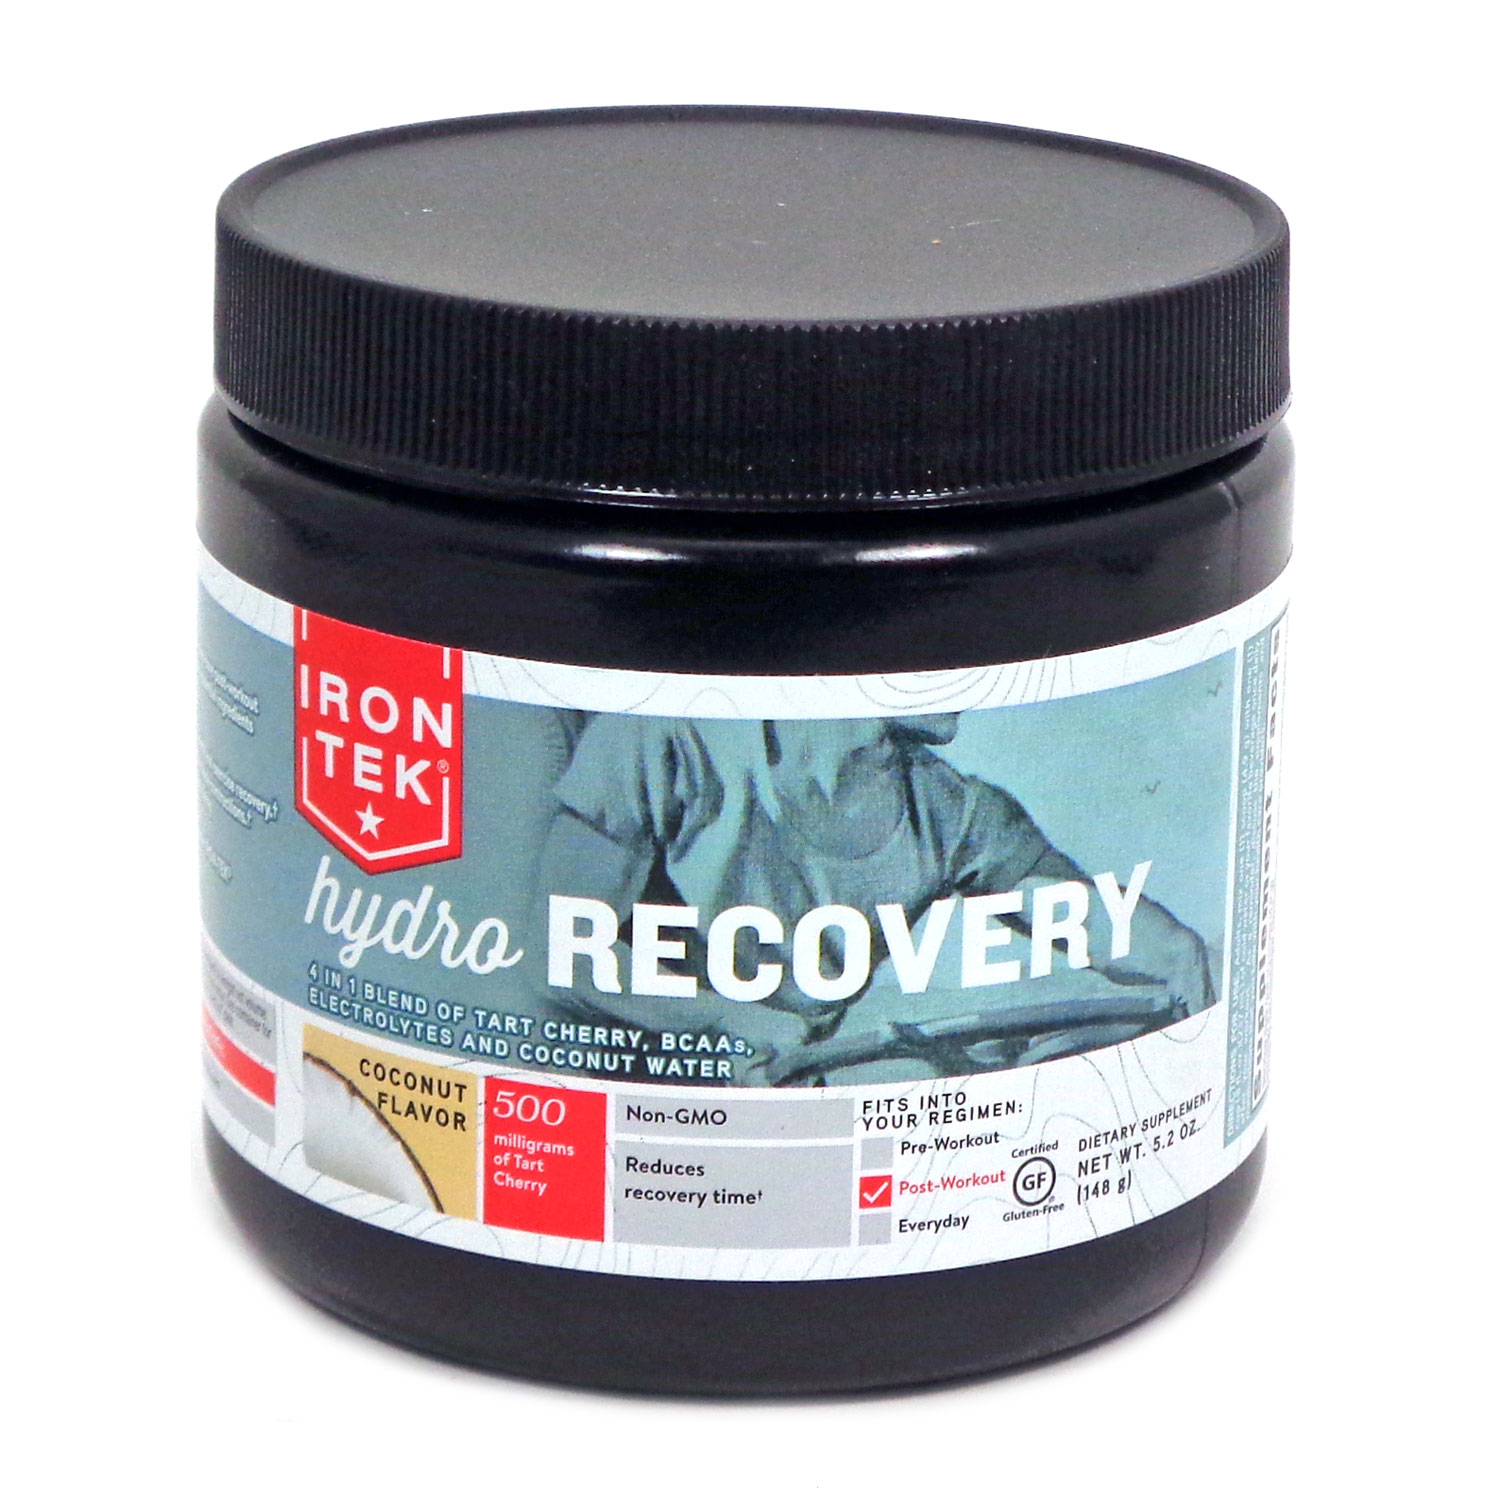 Hydro Recovery Coconut Flavor By Irontek - 30 Servings